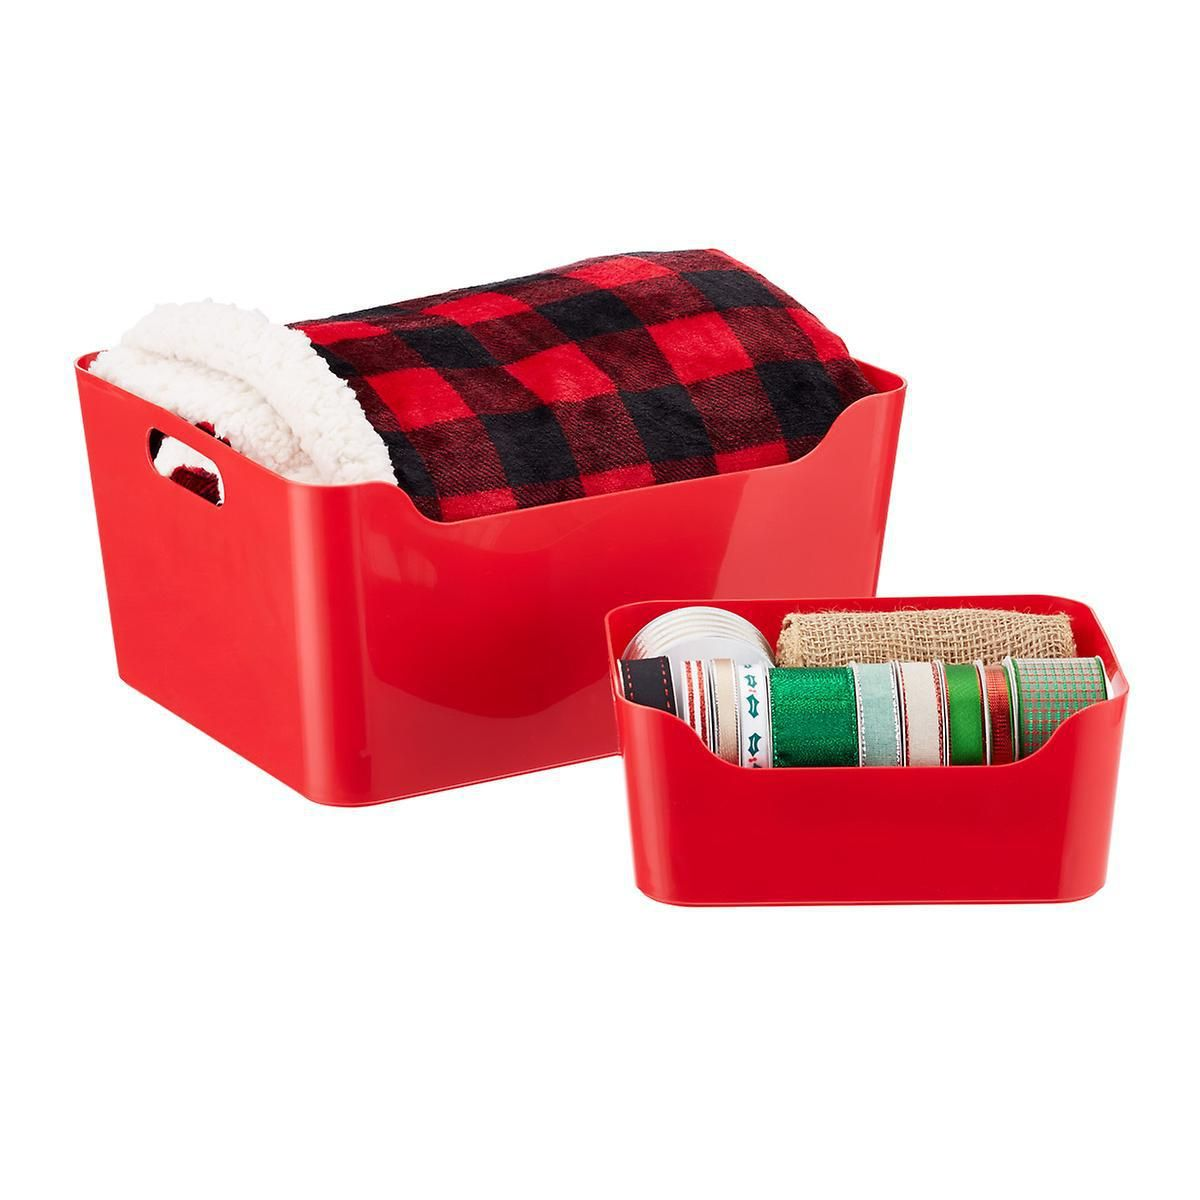 Wherever And Whatever You Need To Organize Our Red Plastic Storage Bins With Handles H Christmas Tree Storage Tote Christmas Tree Storage Plastic Storage Bins